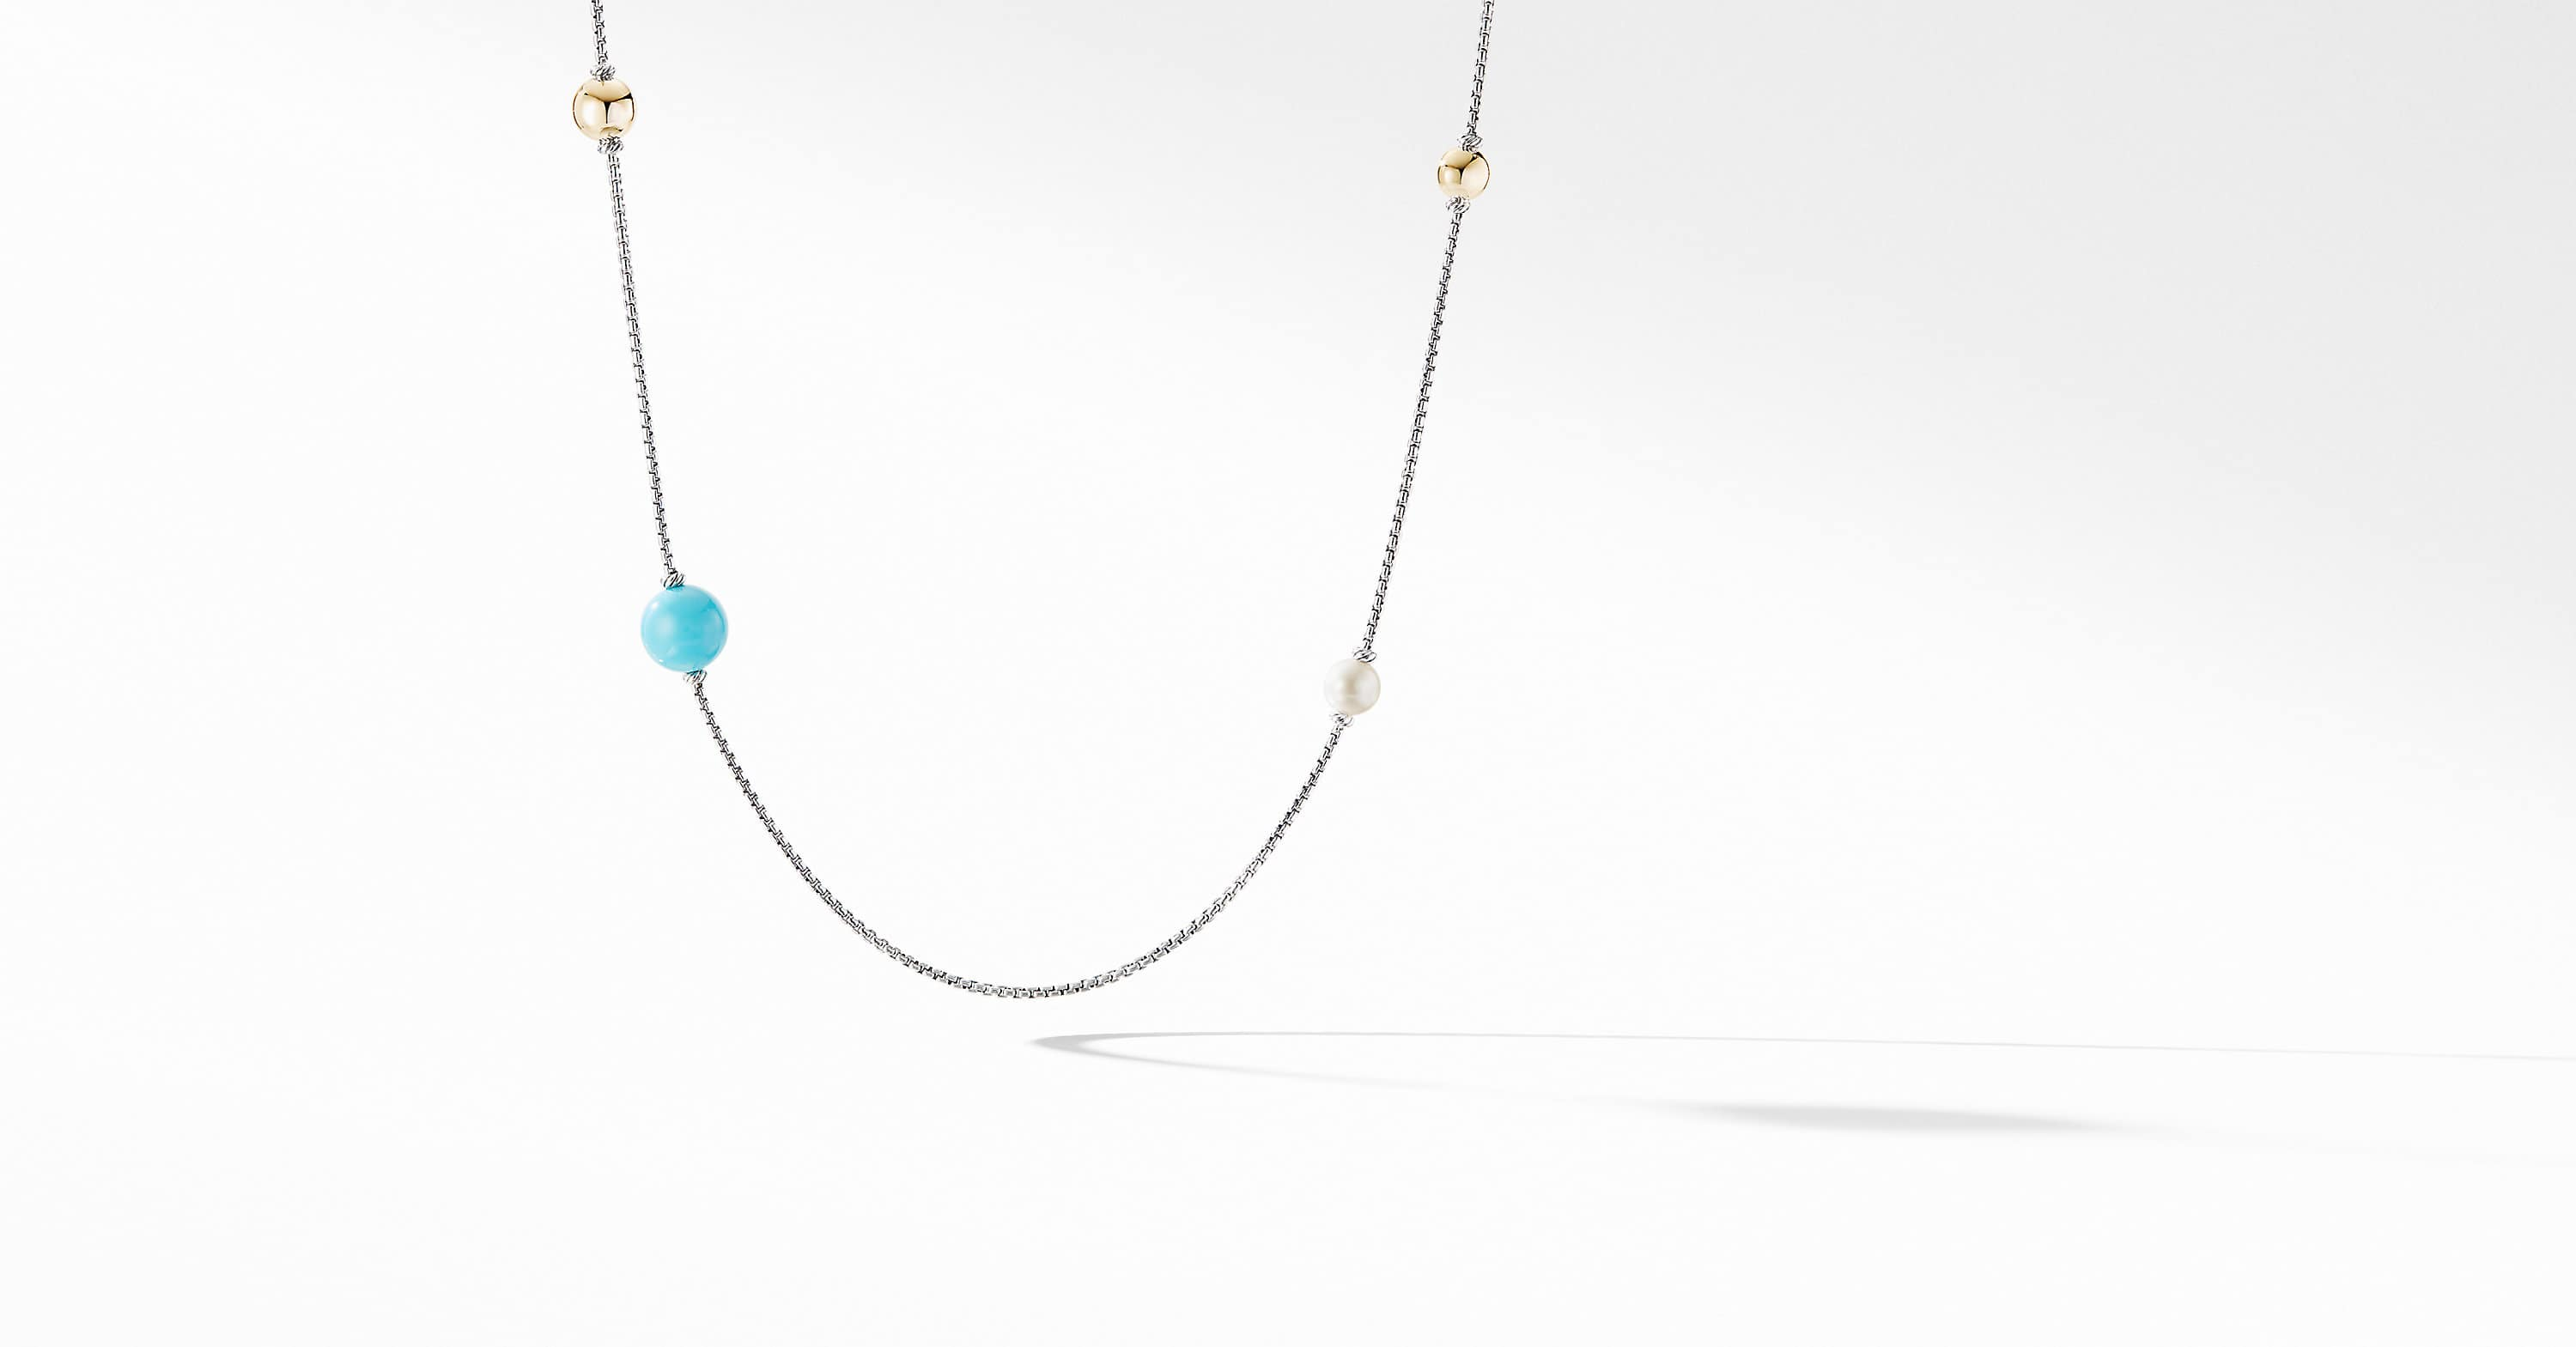 Solari XL Station Chain Necklace with 14K Yellow Gold